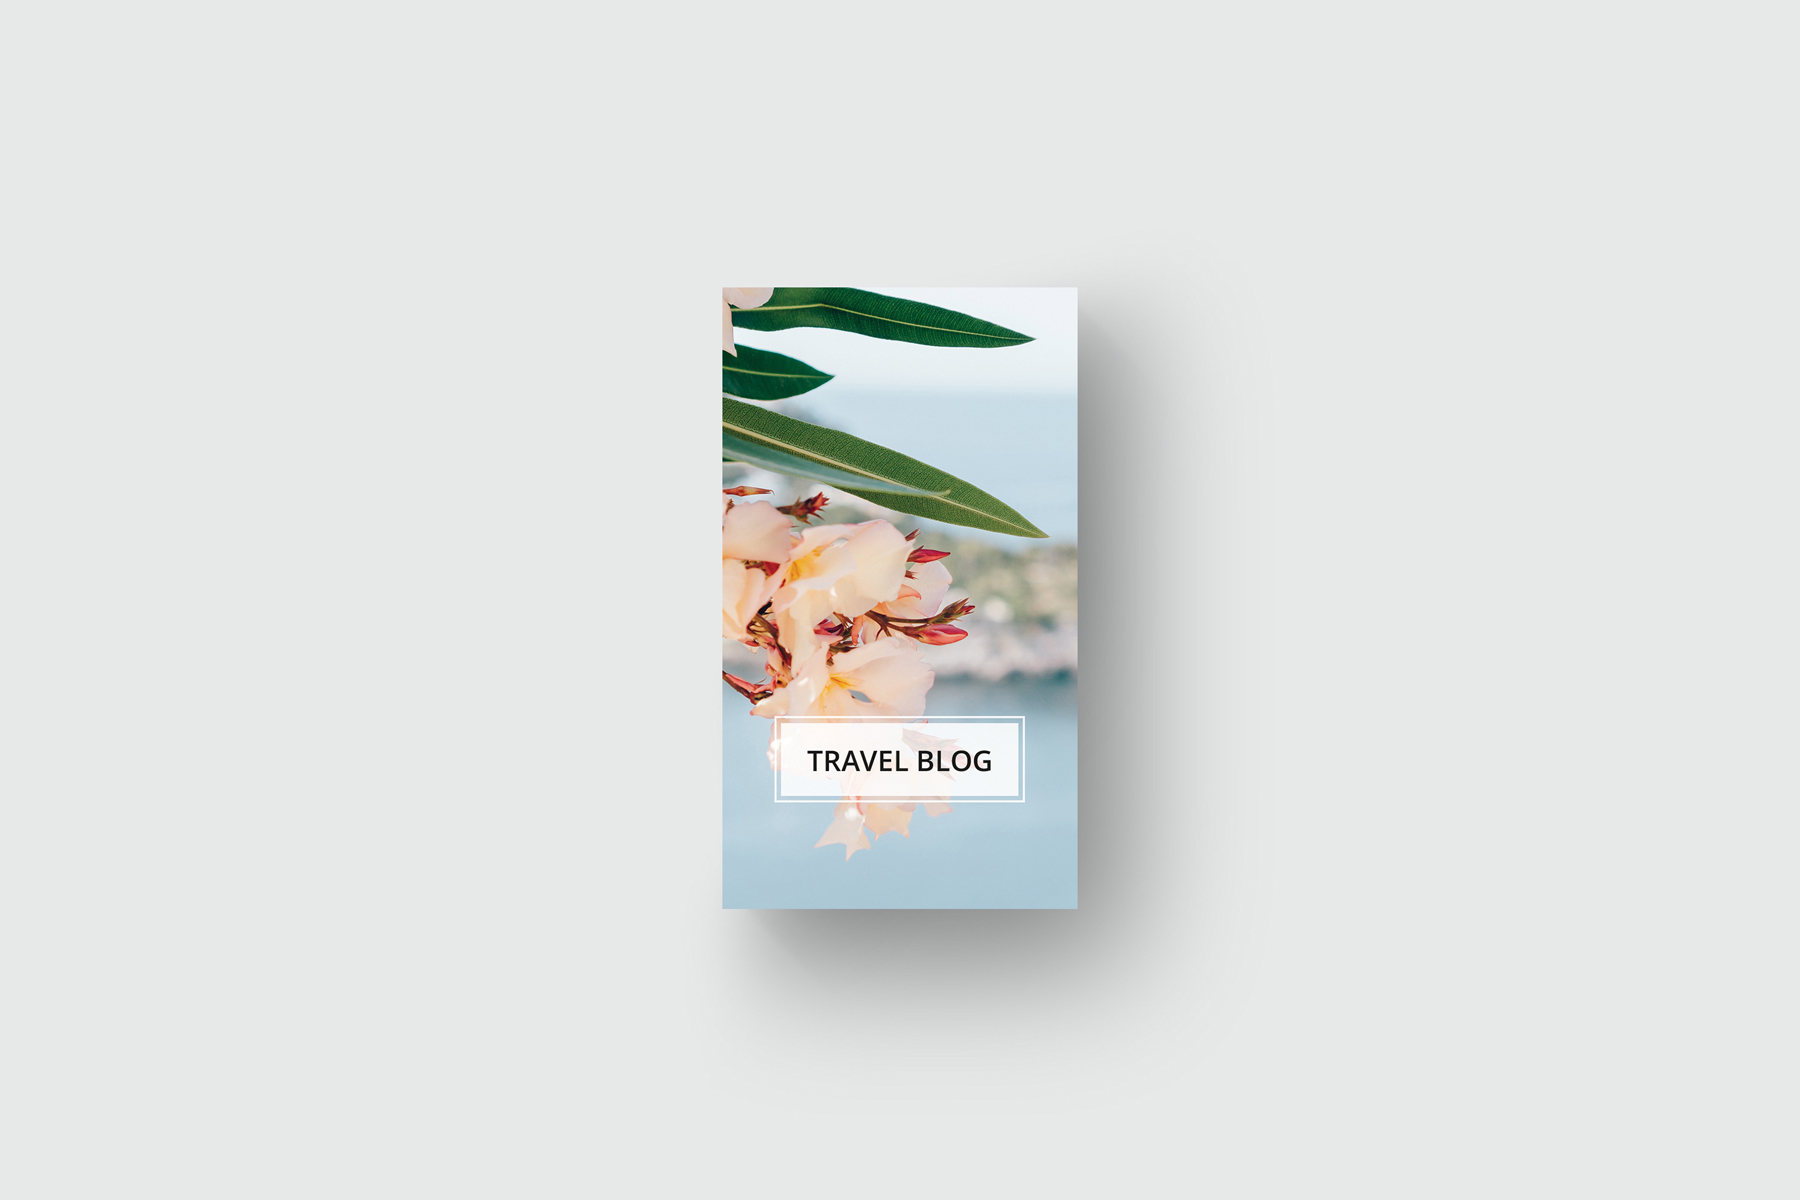 Traveling business card Corporate Identity